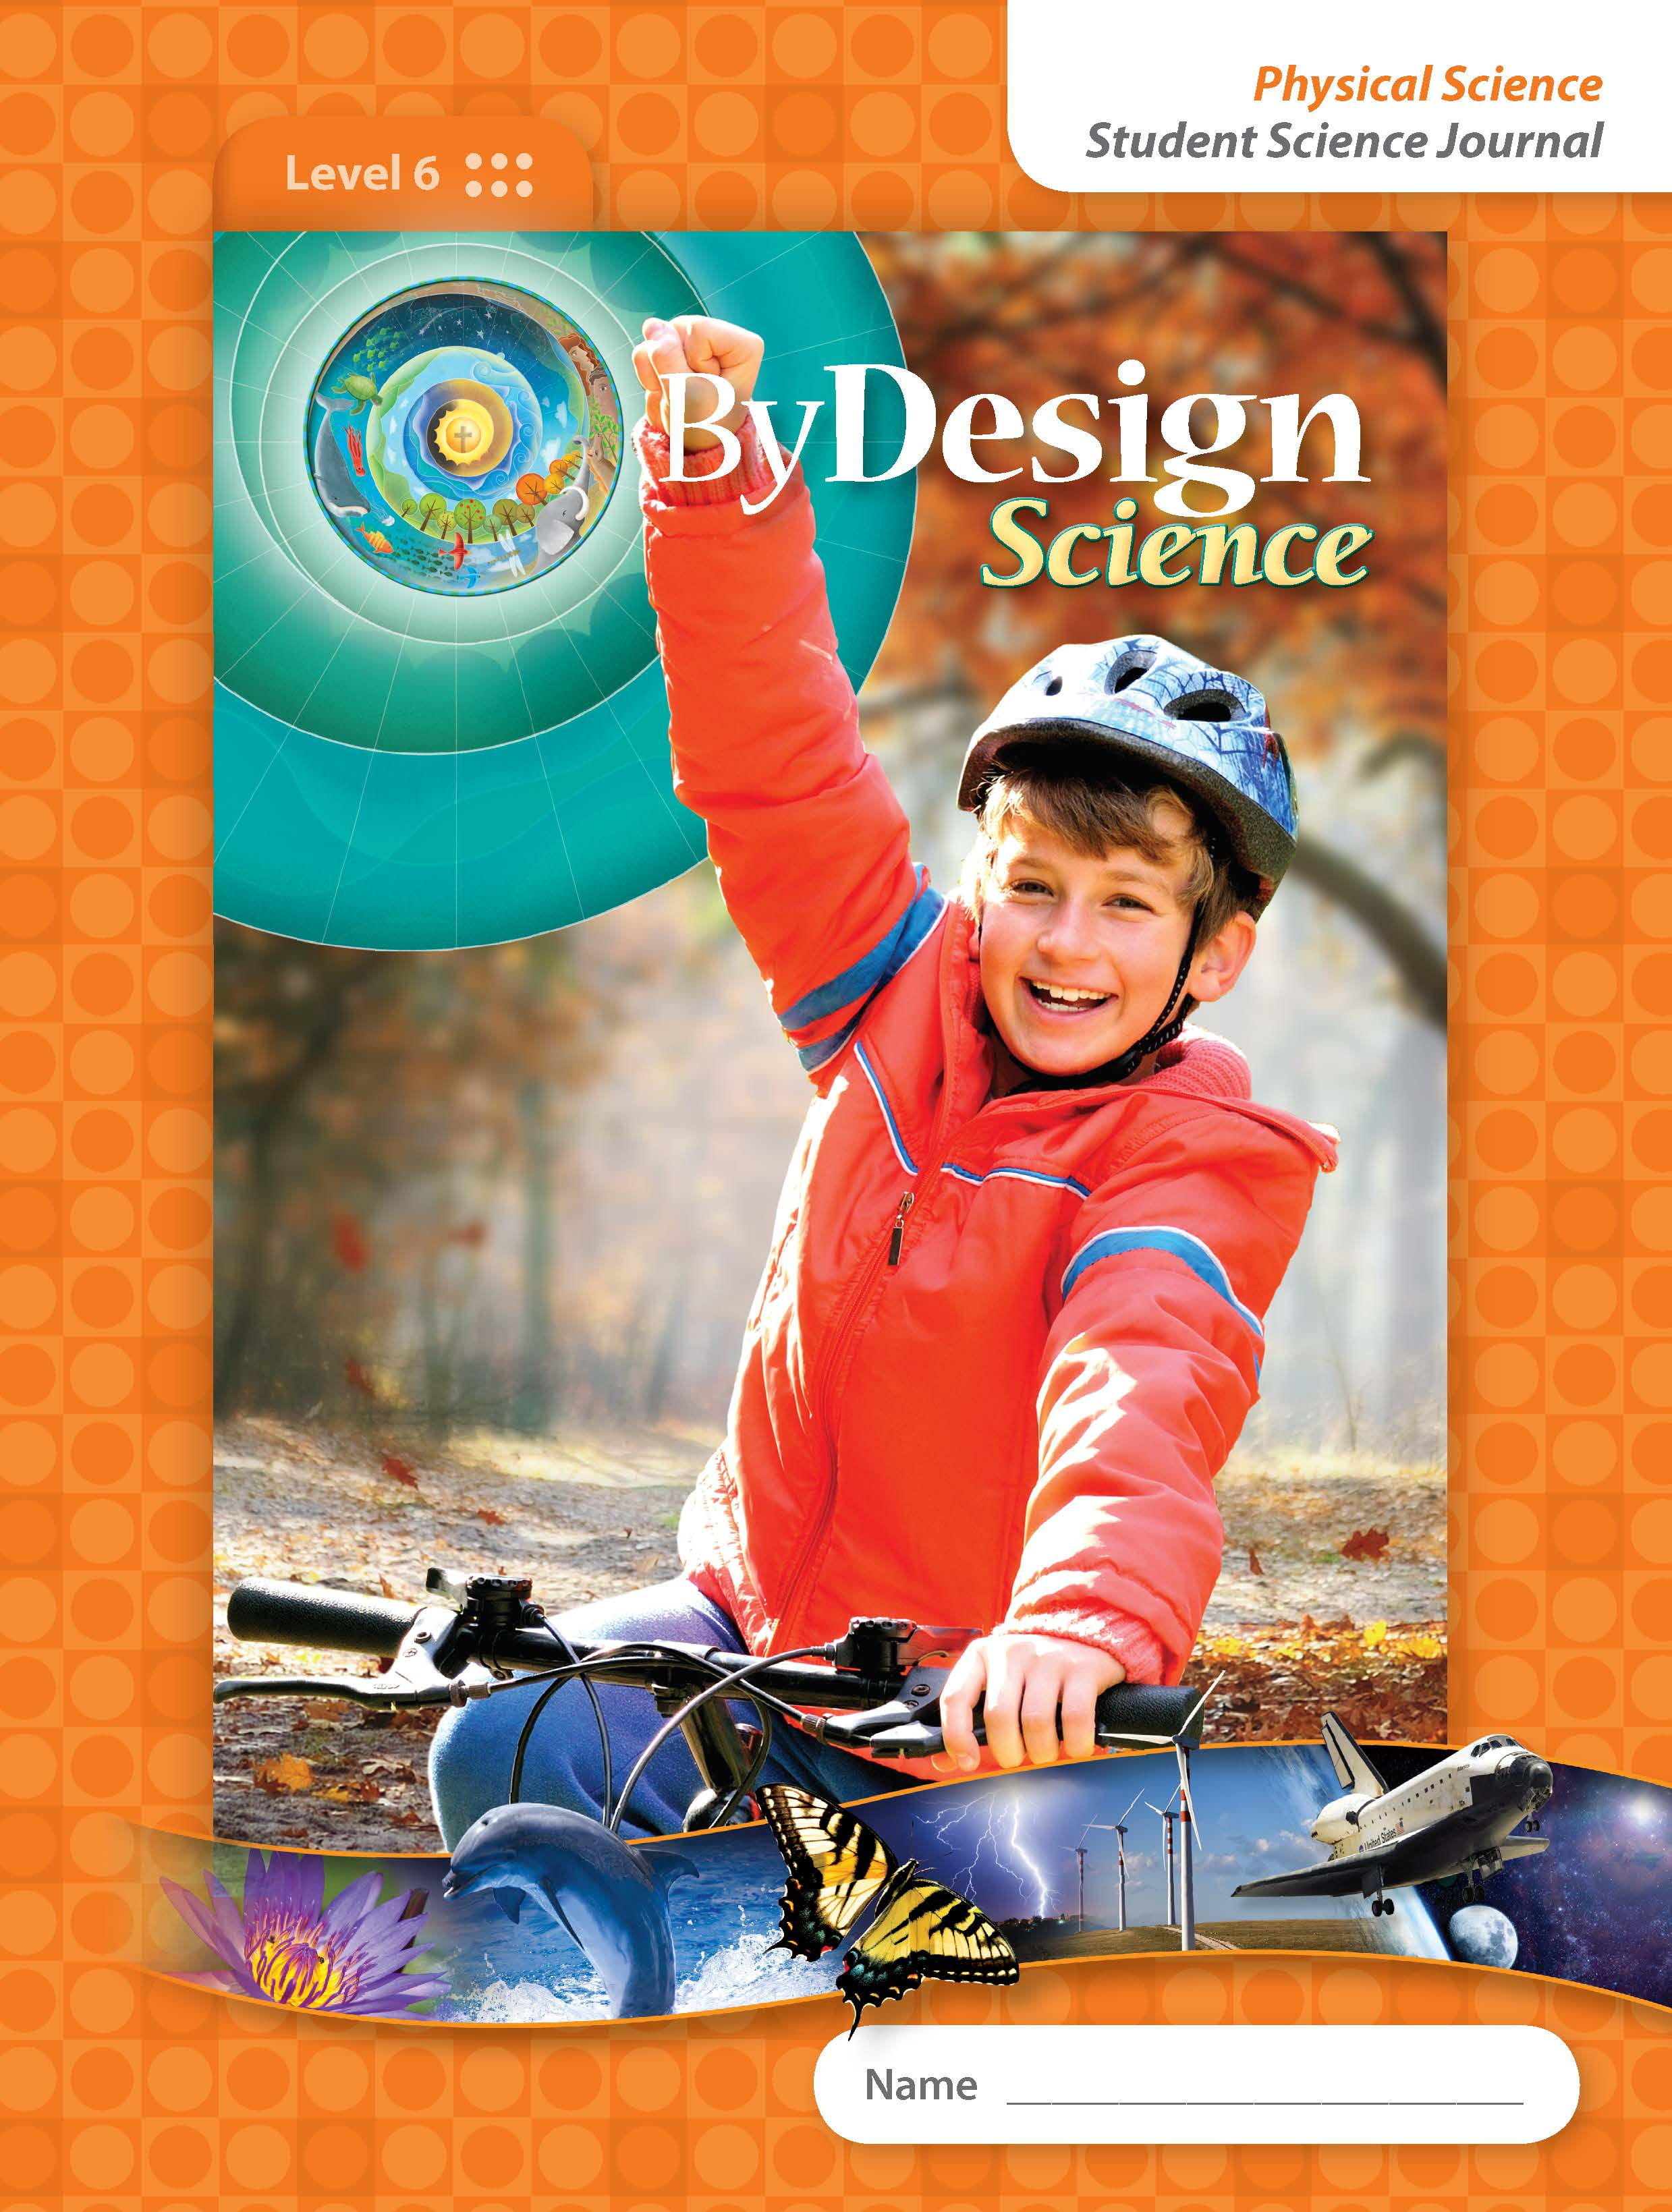 By Design Grade 6 Student Science Journal 1 Year License